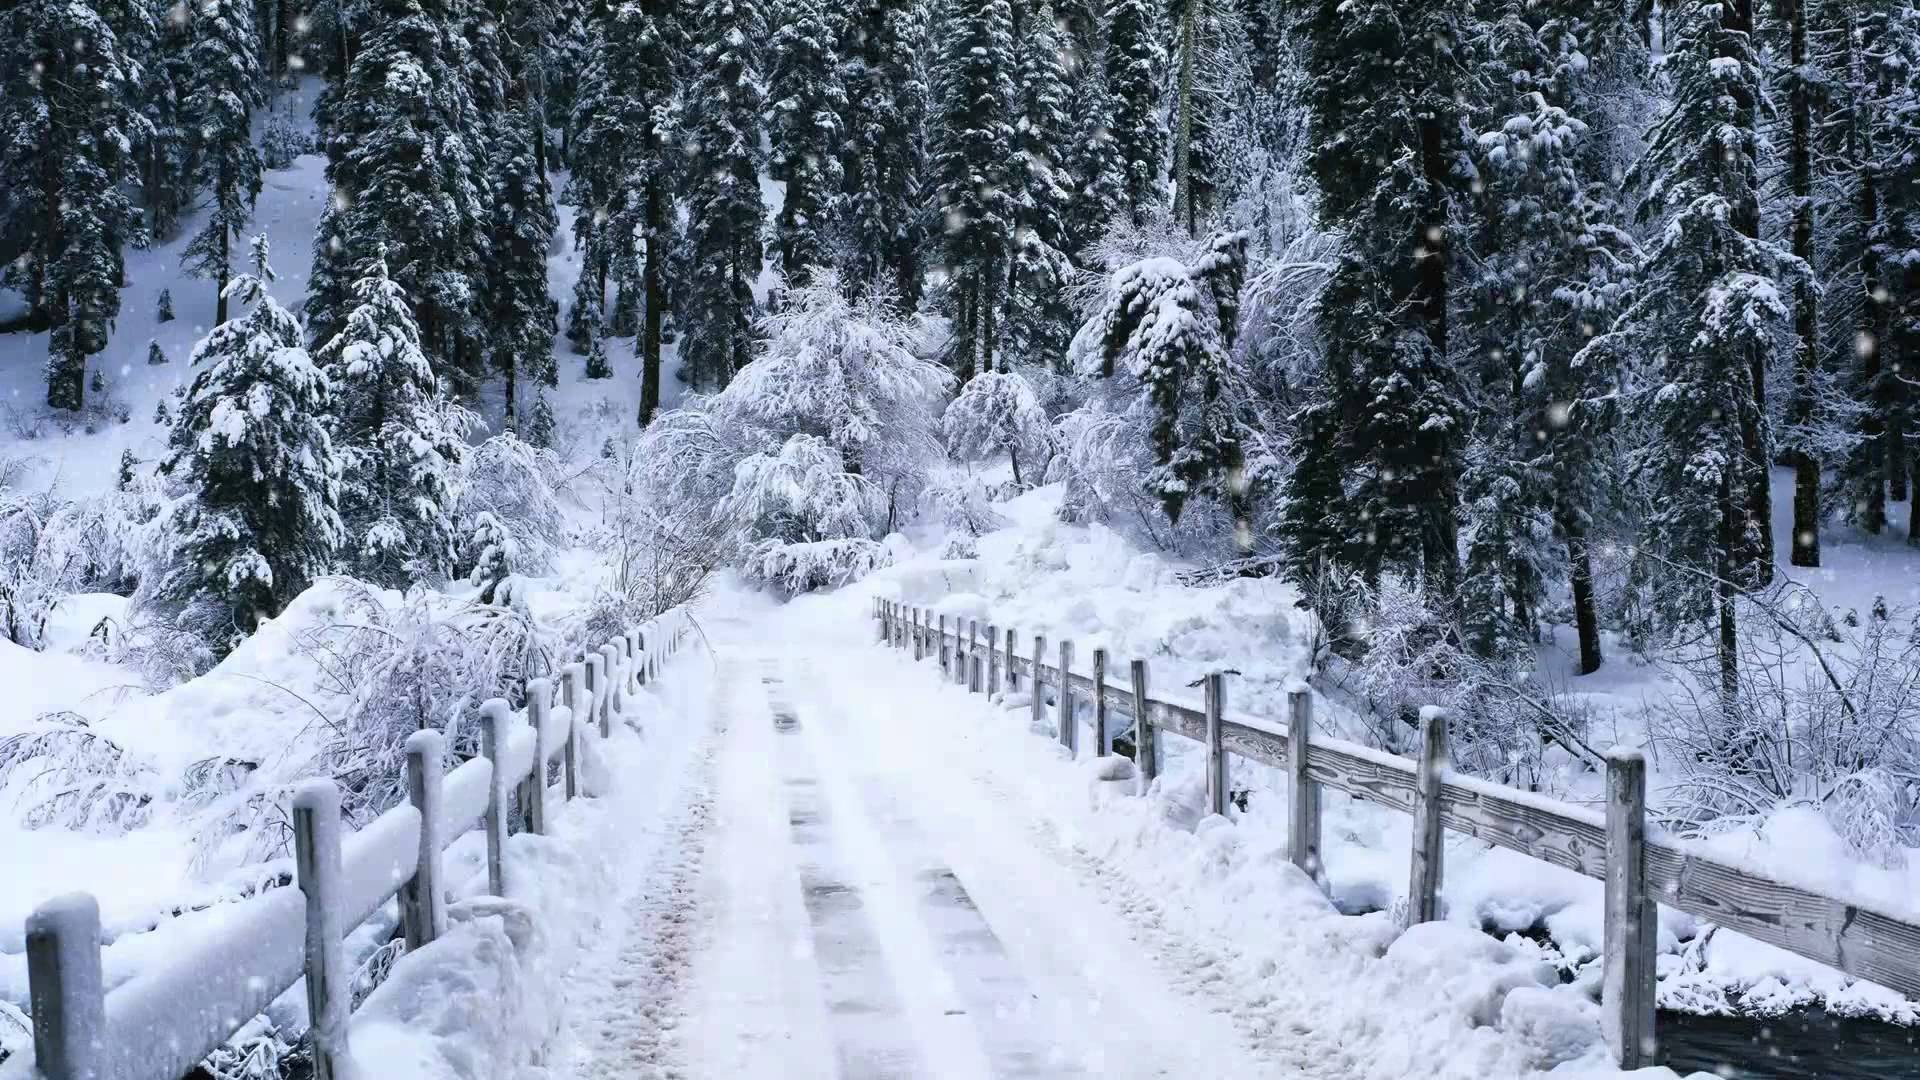 Snow Falling Windows 7 Video Background DreamScene Adobe after 1920x1080